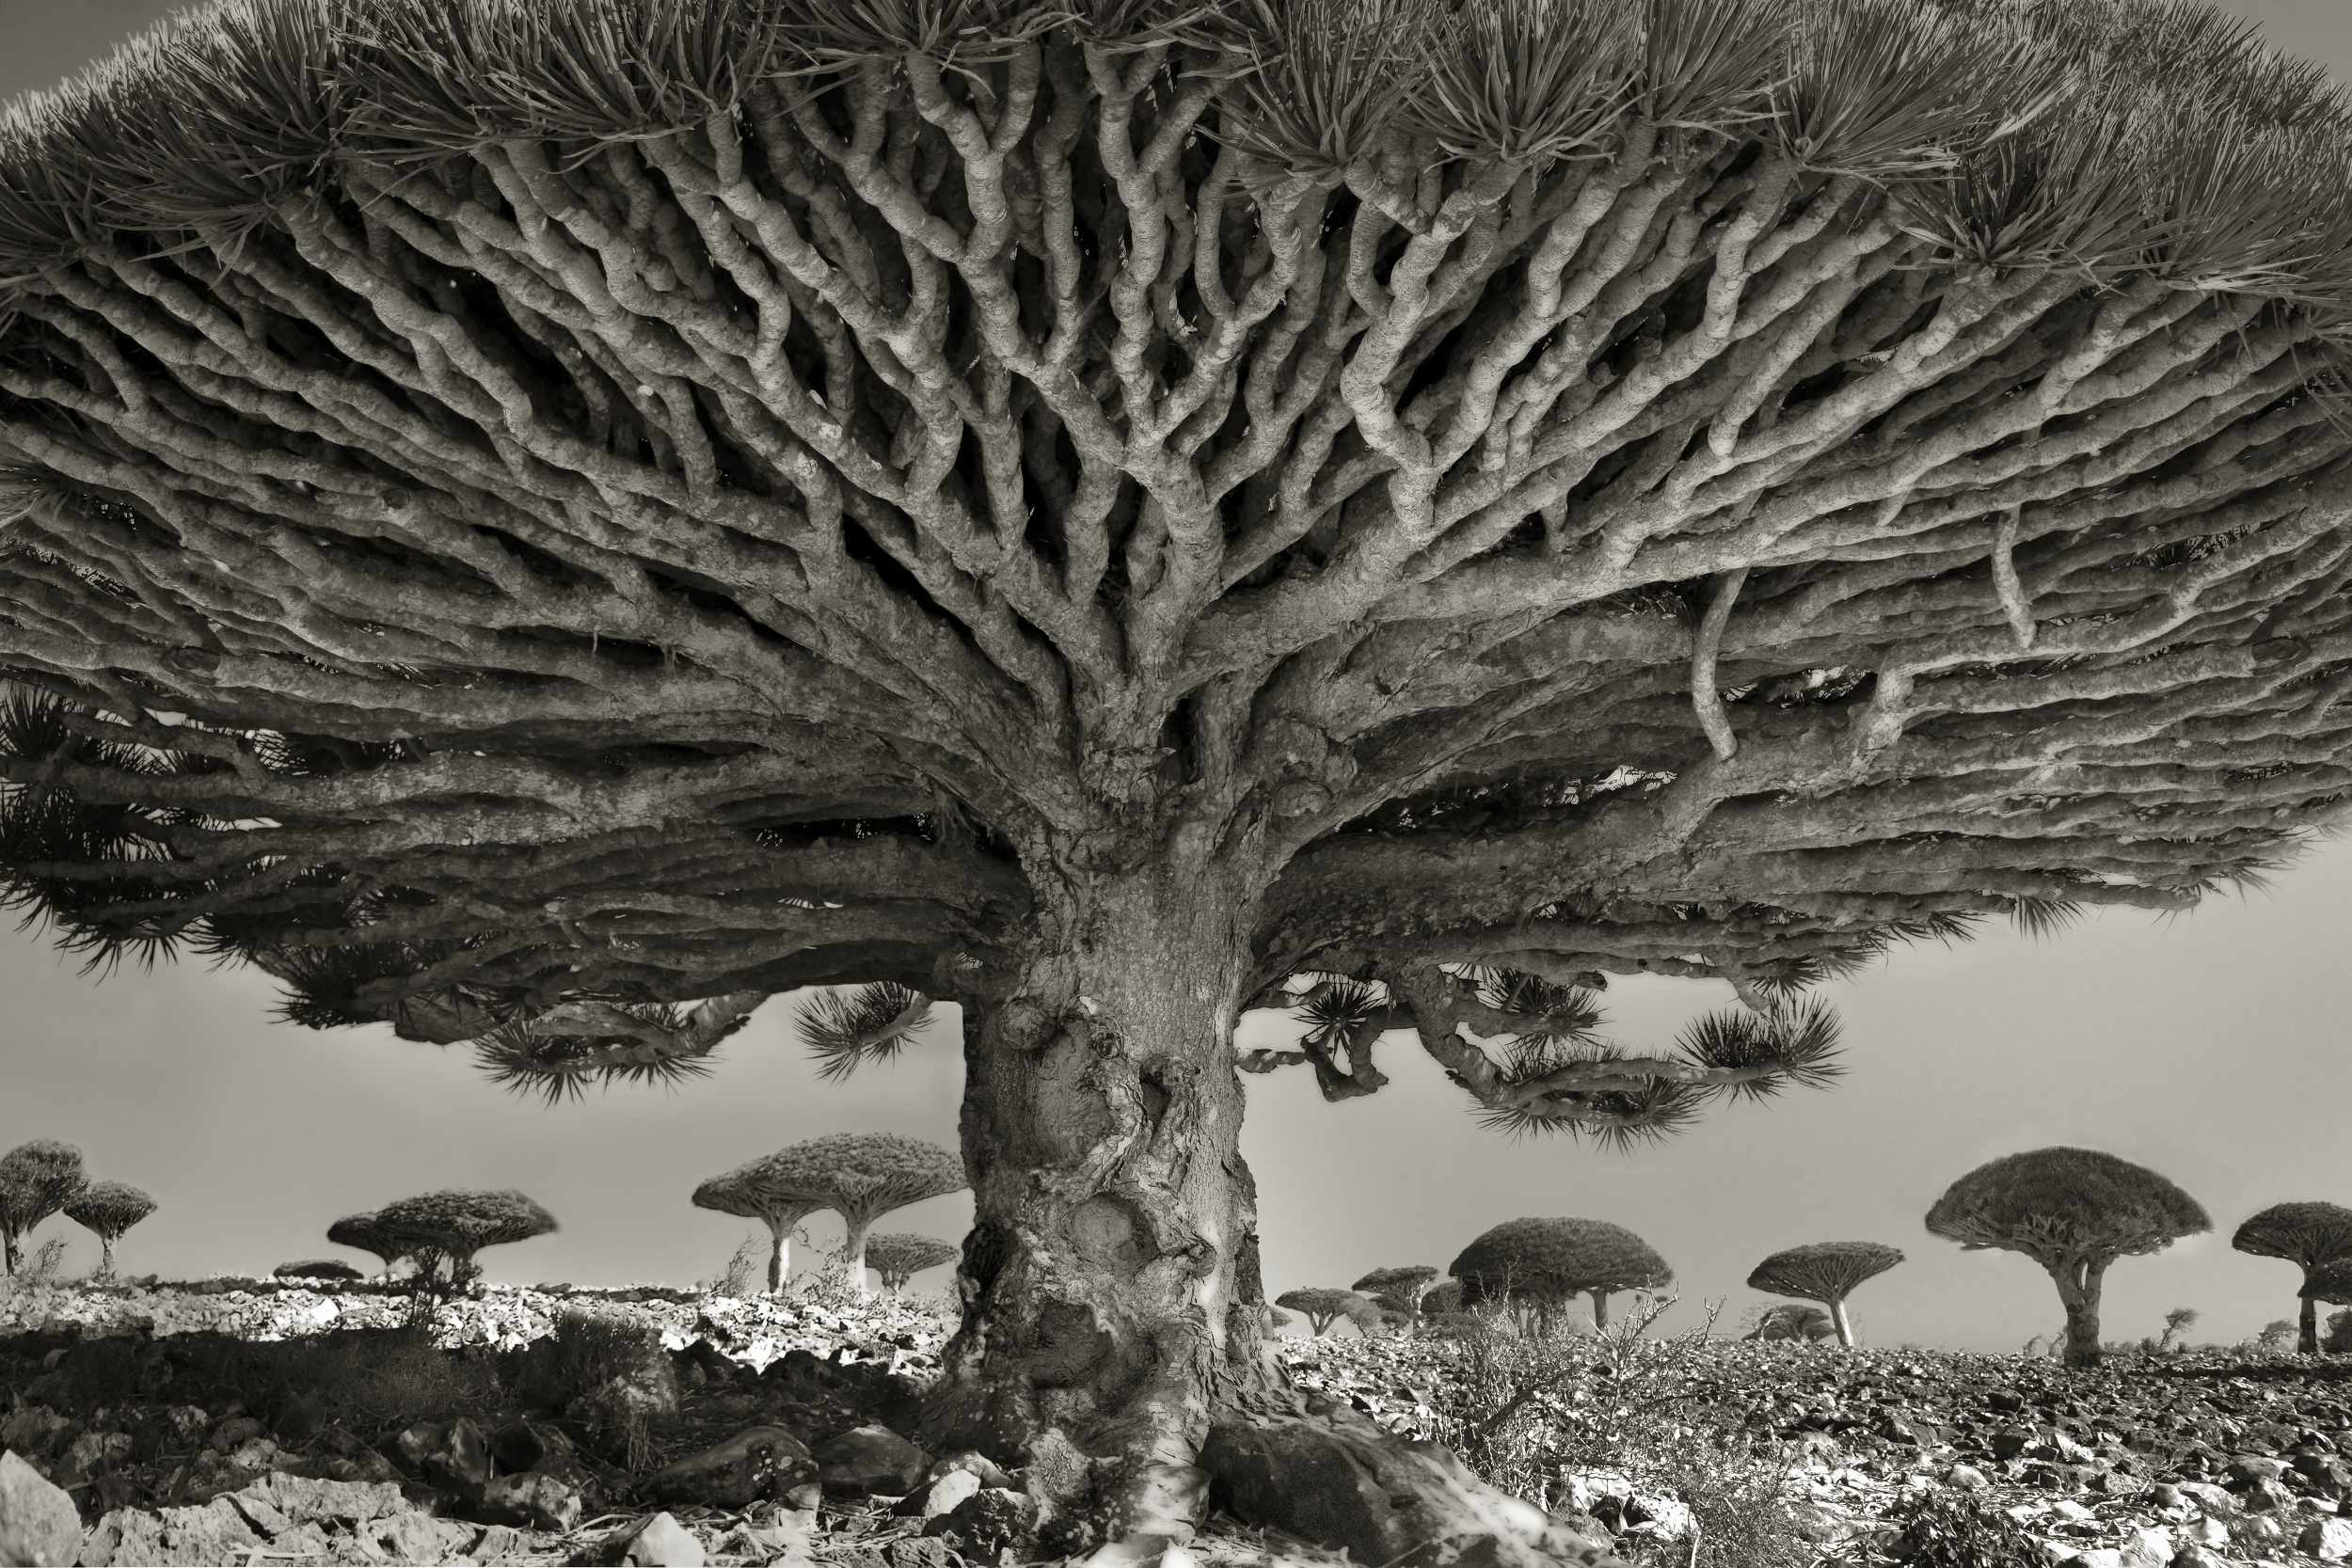 Island of the Dragon's Blood, Heart of the Dragon (PH Neutro gallery)